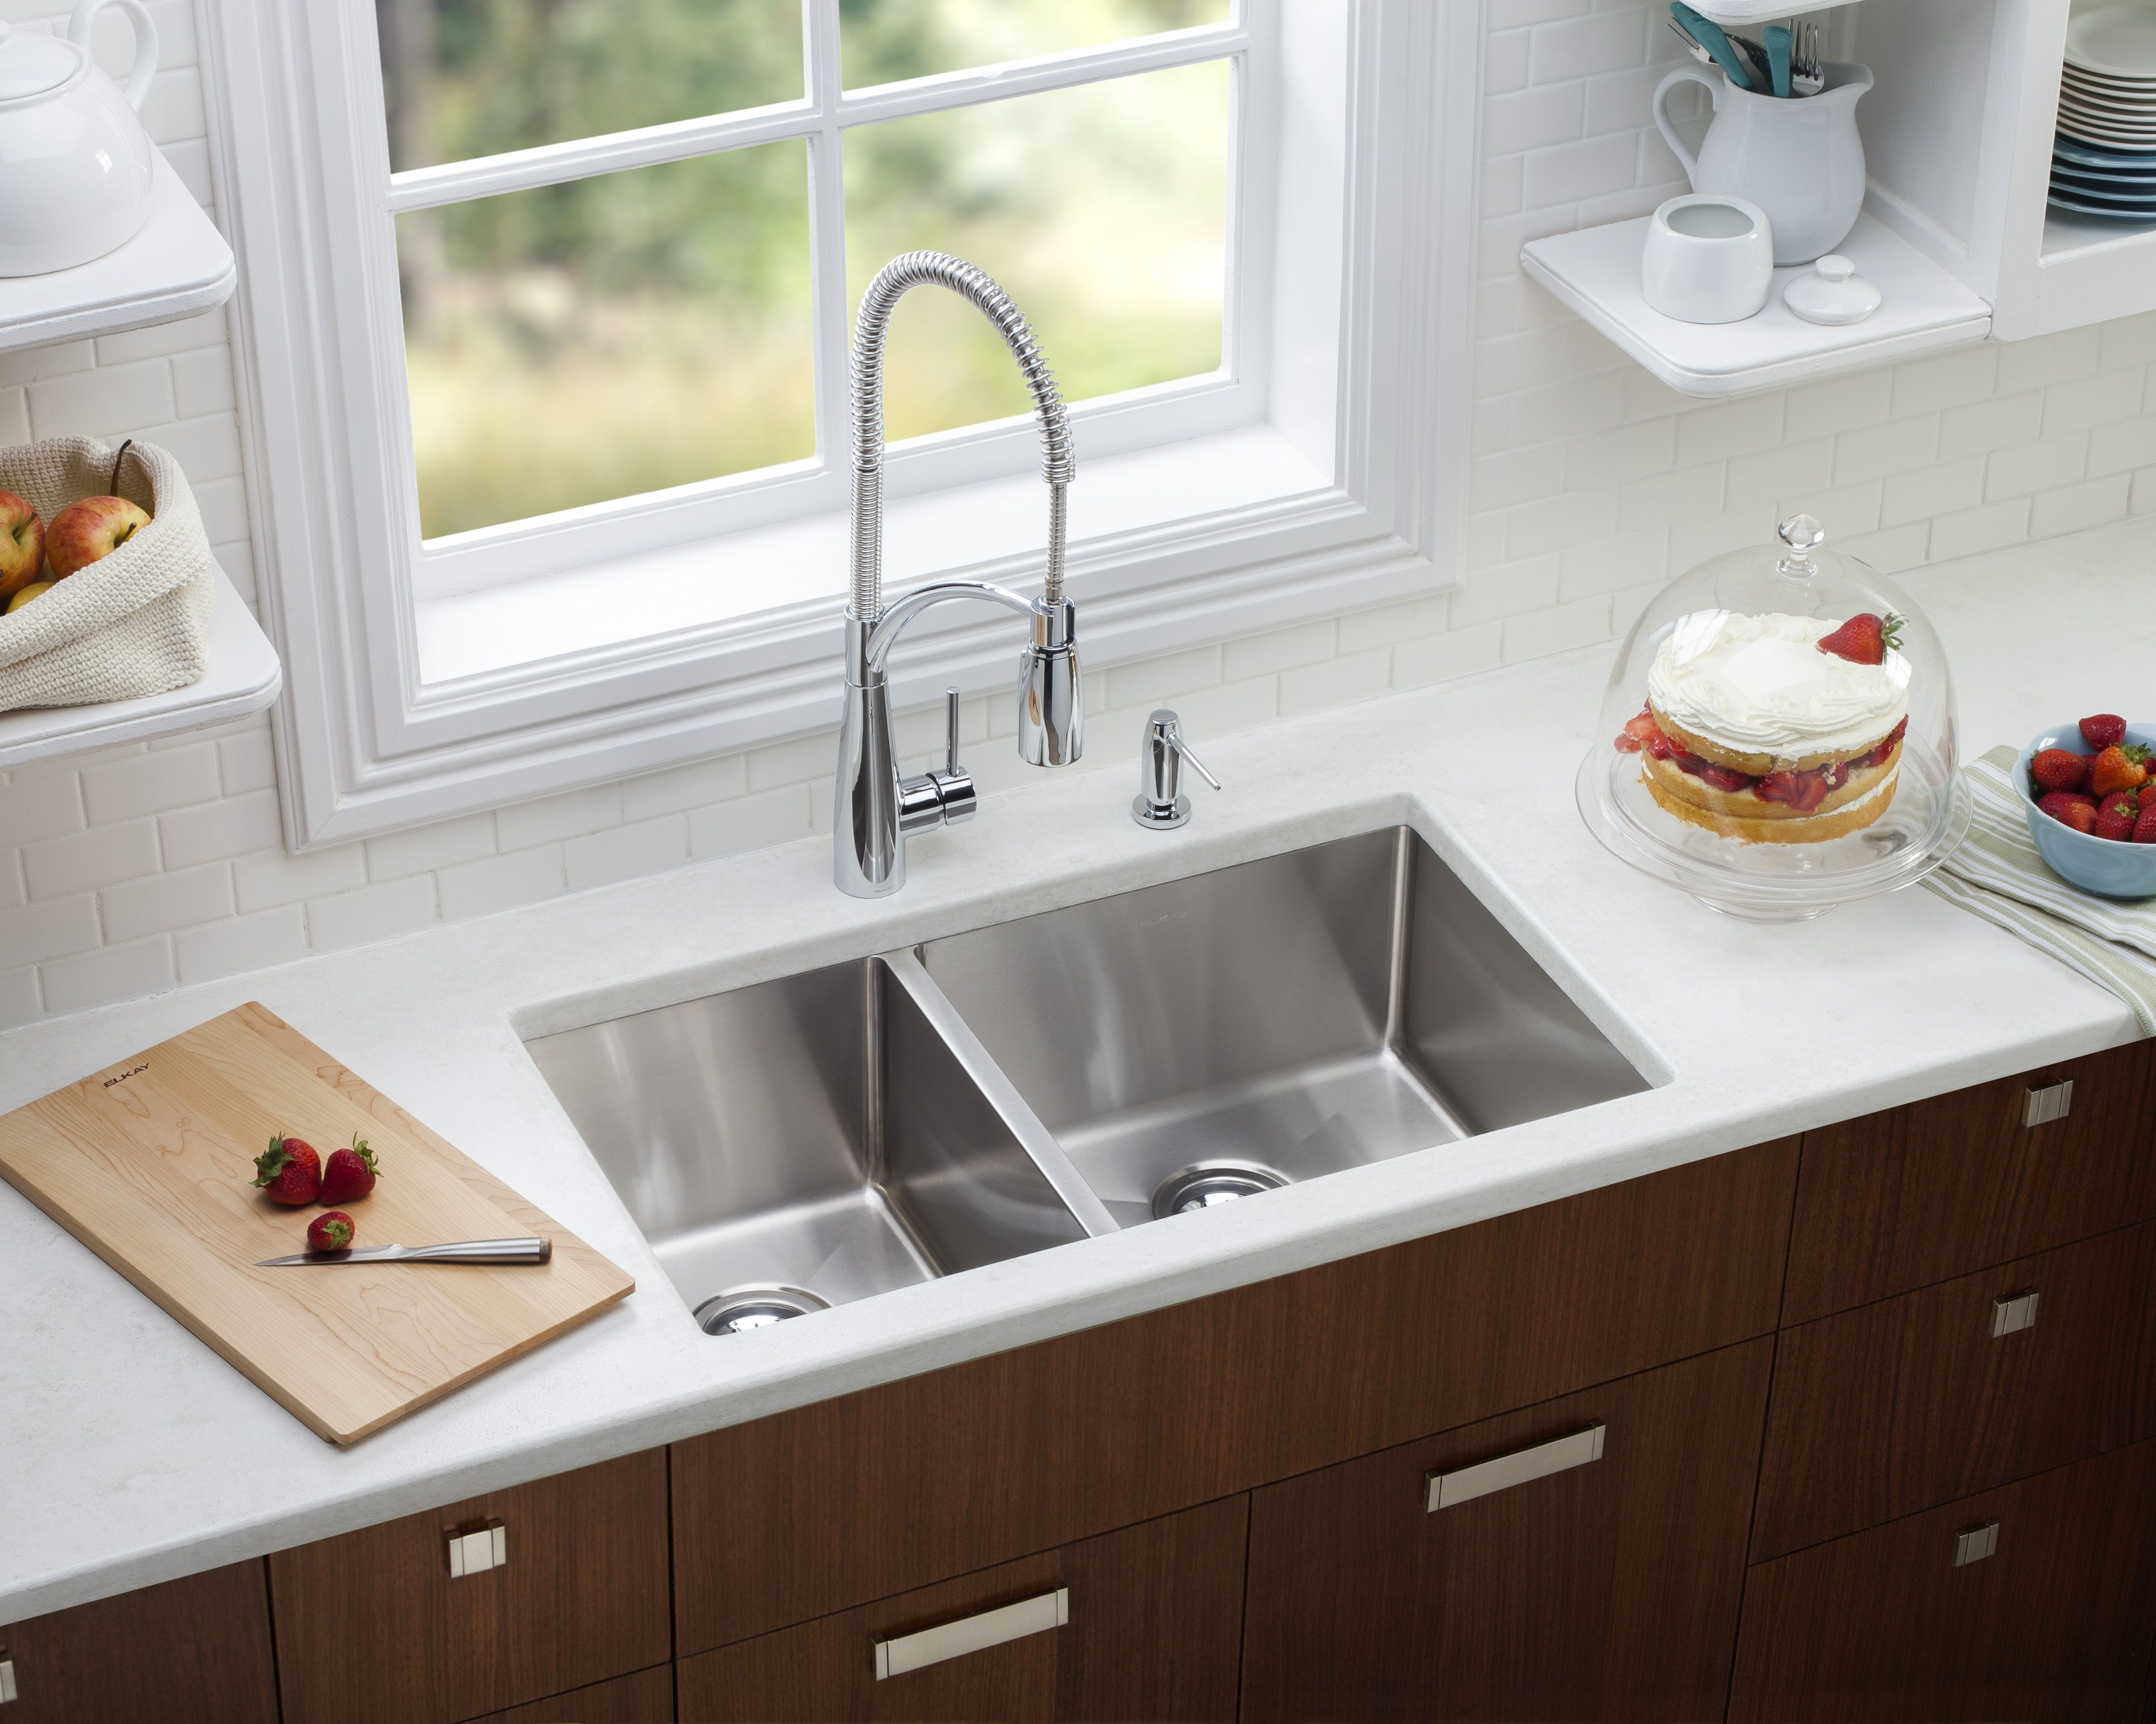 Everyday Muebles Rey Tarjas De Cocina Acero Inoxidable Kitchen Sink